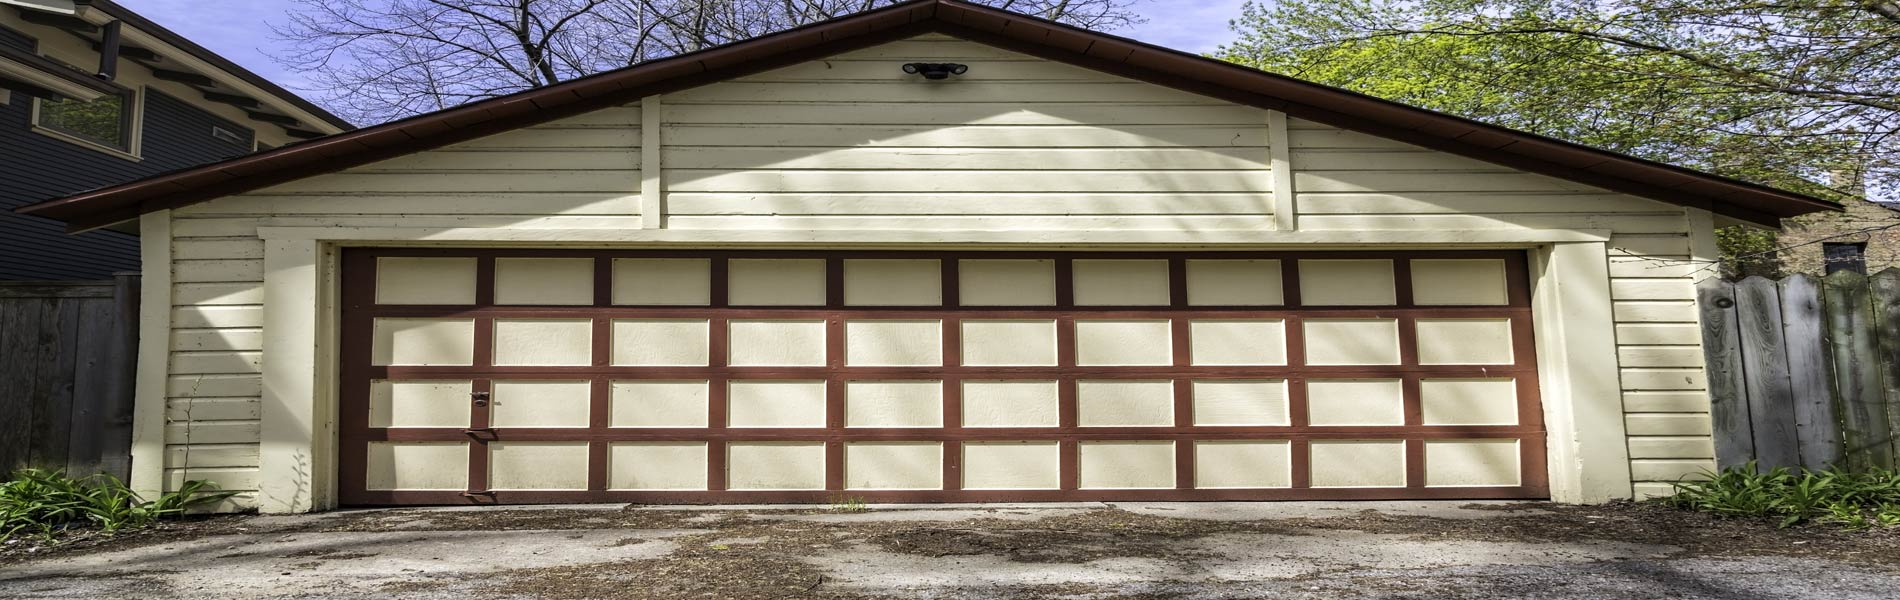 HighTech Garage Doors, Terrell, TX 469-217-7549